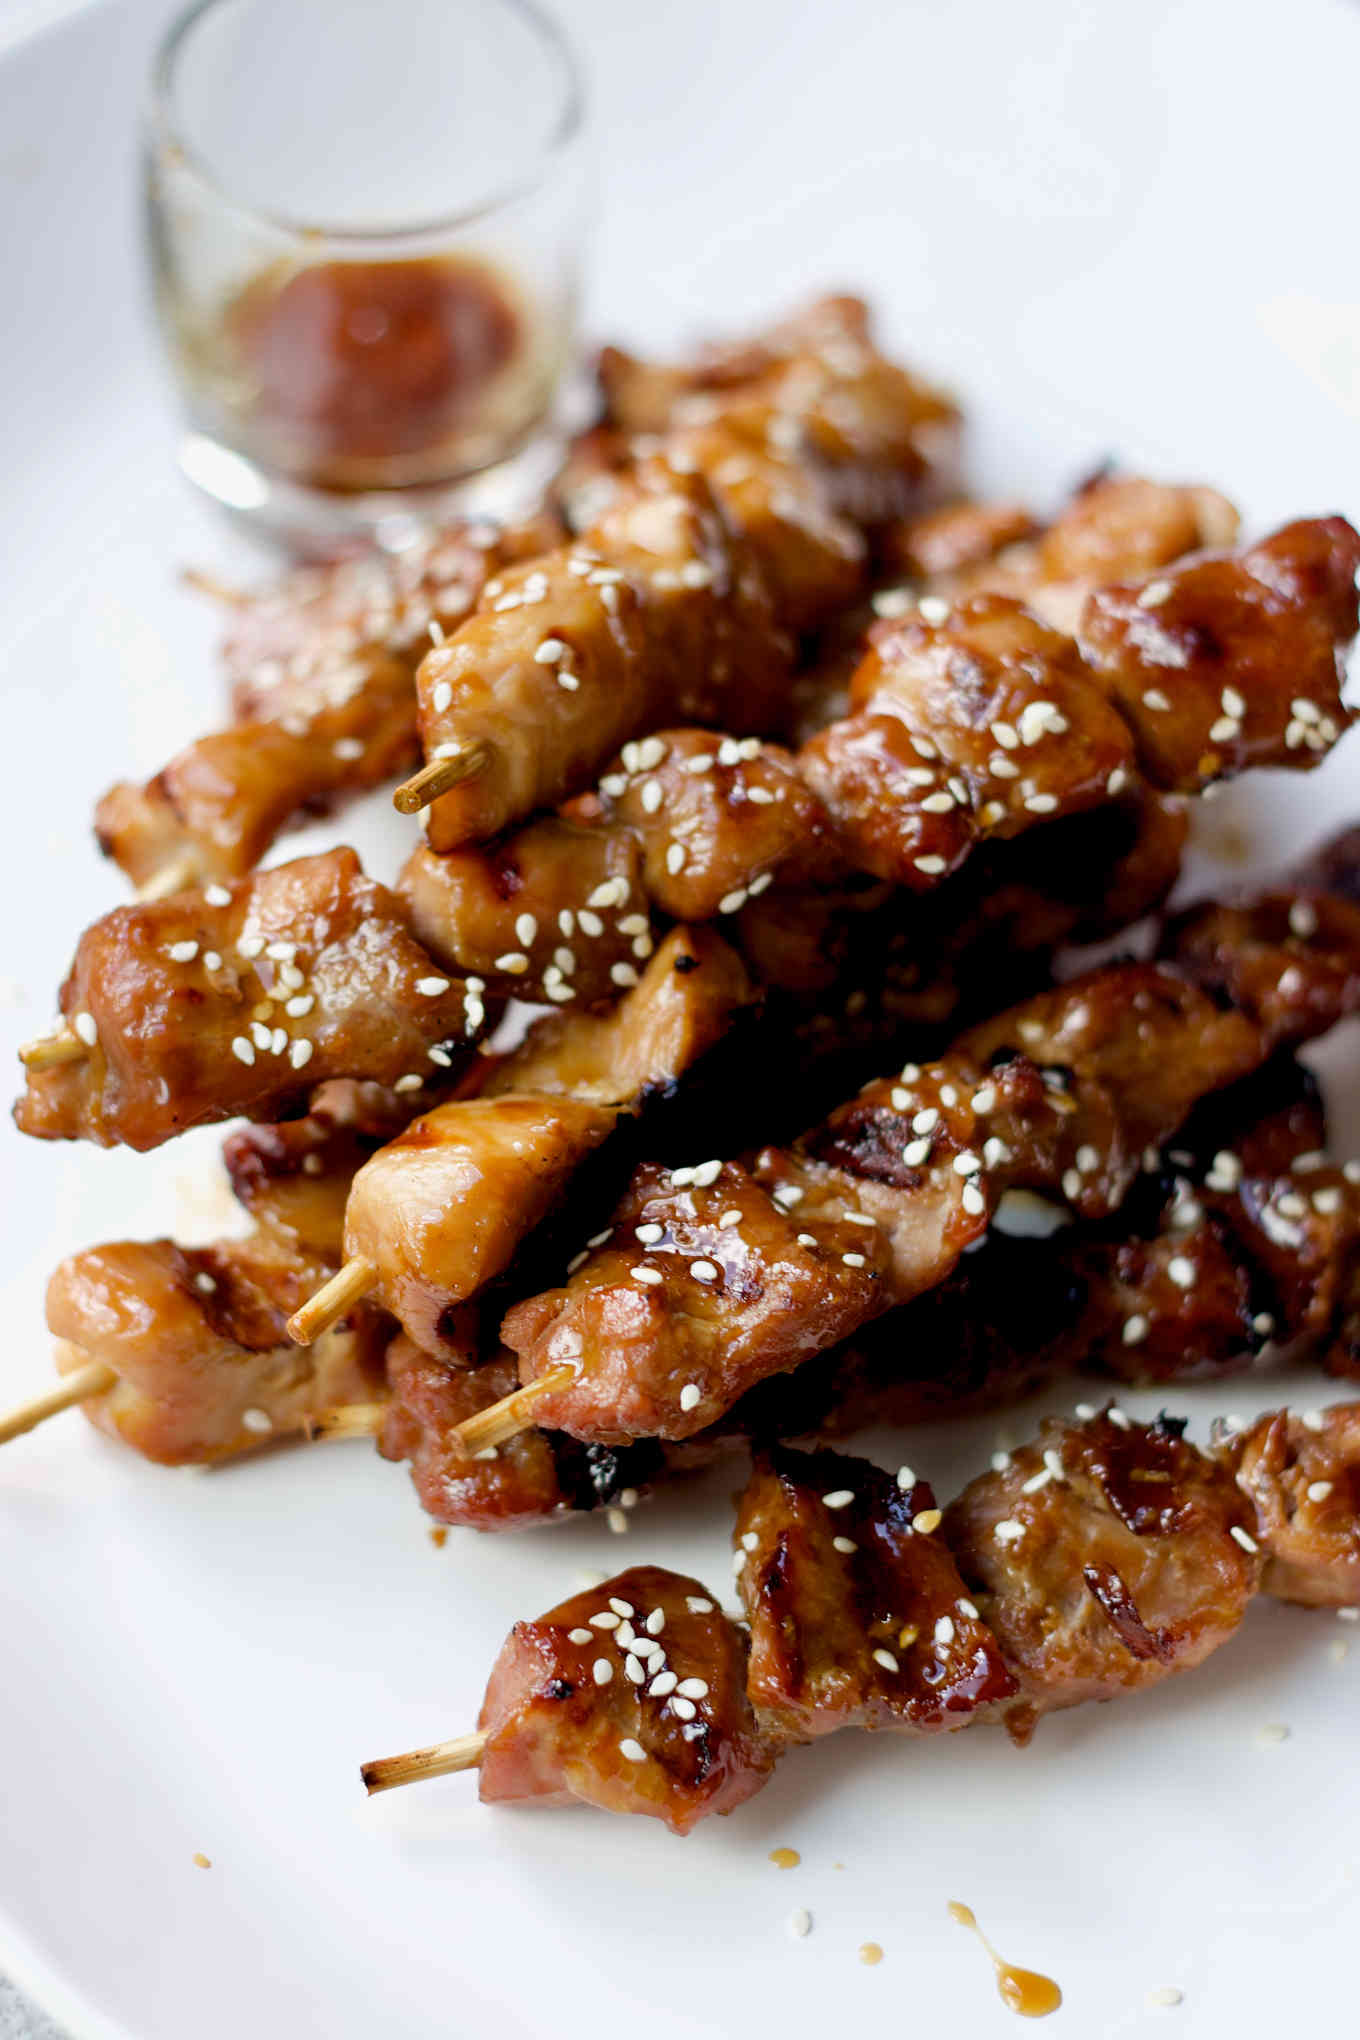 Japanese grilled turkey skewers with beautiful grill marks and sticky glaze decorated with sesame seeds.